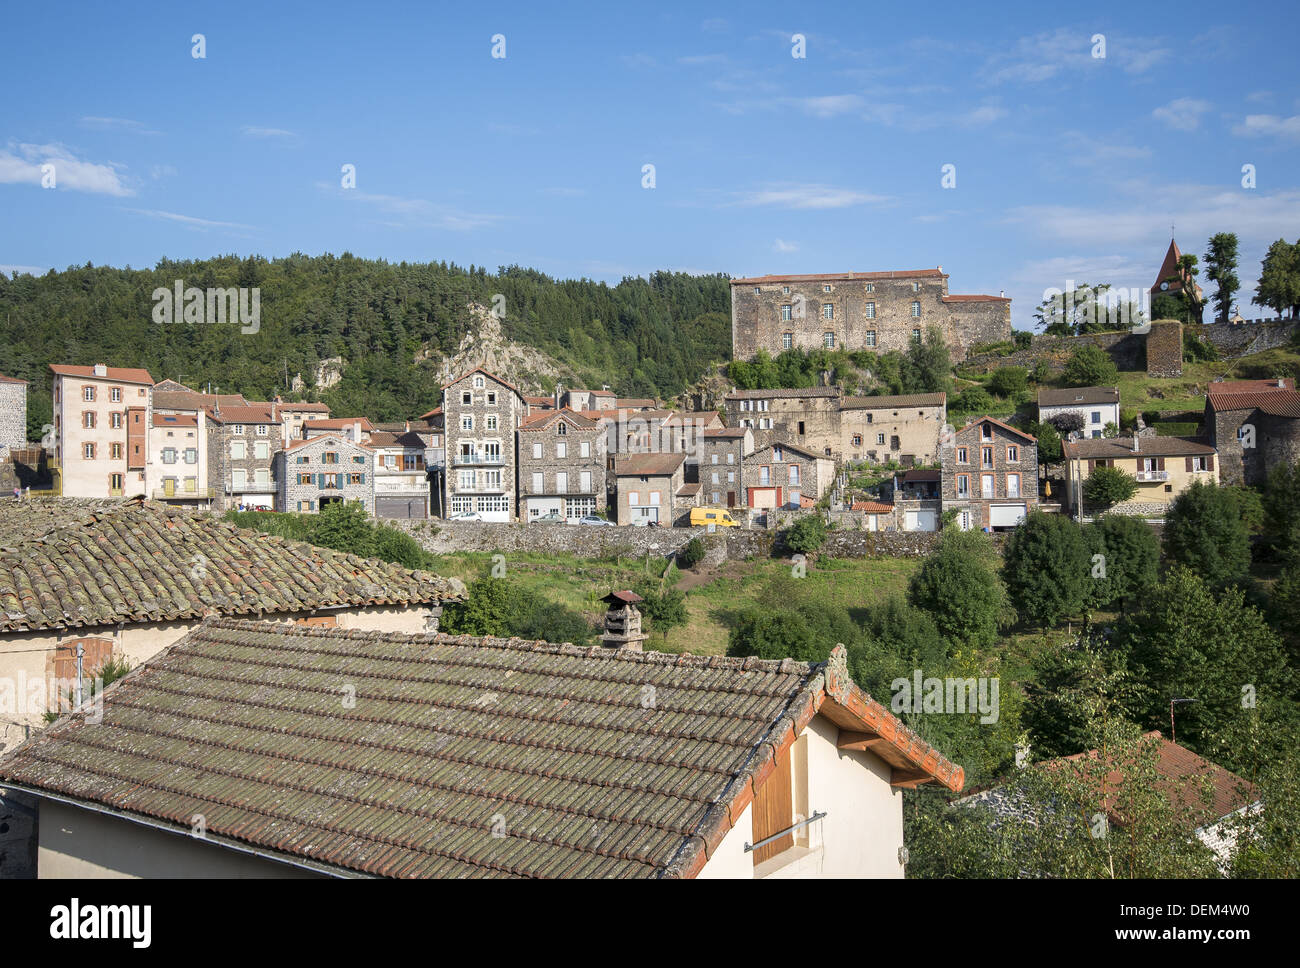 The picturesque village of St-Privat-d'Allier on the GR65 route, The way of St James, France - Stock Image